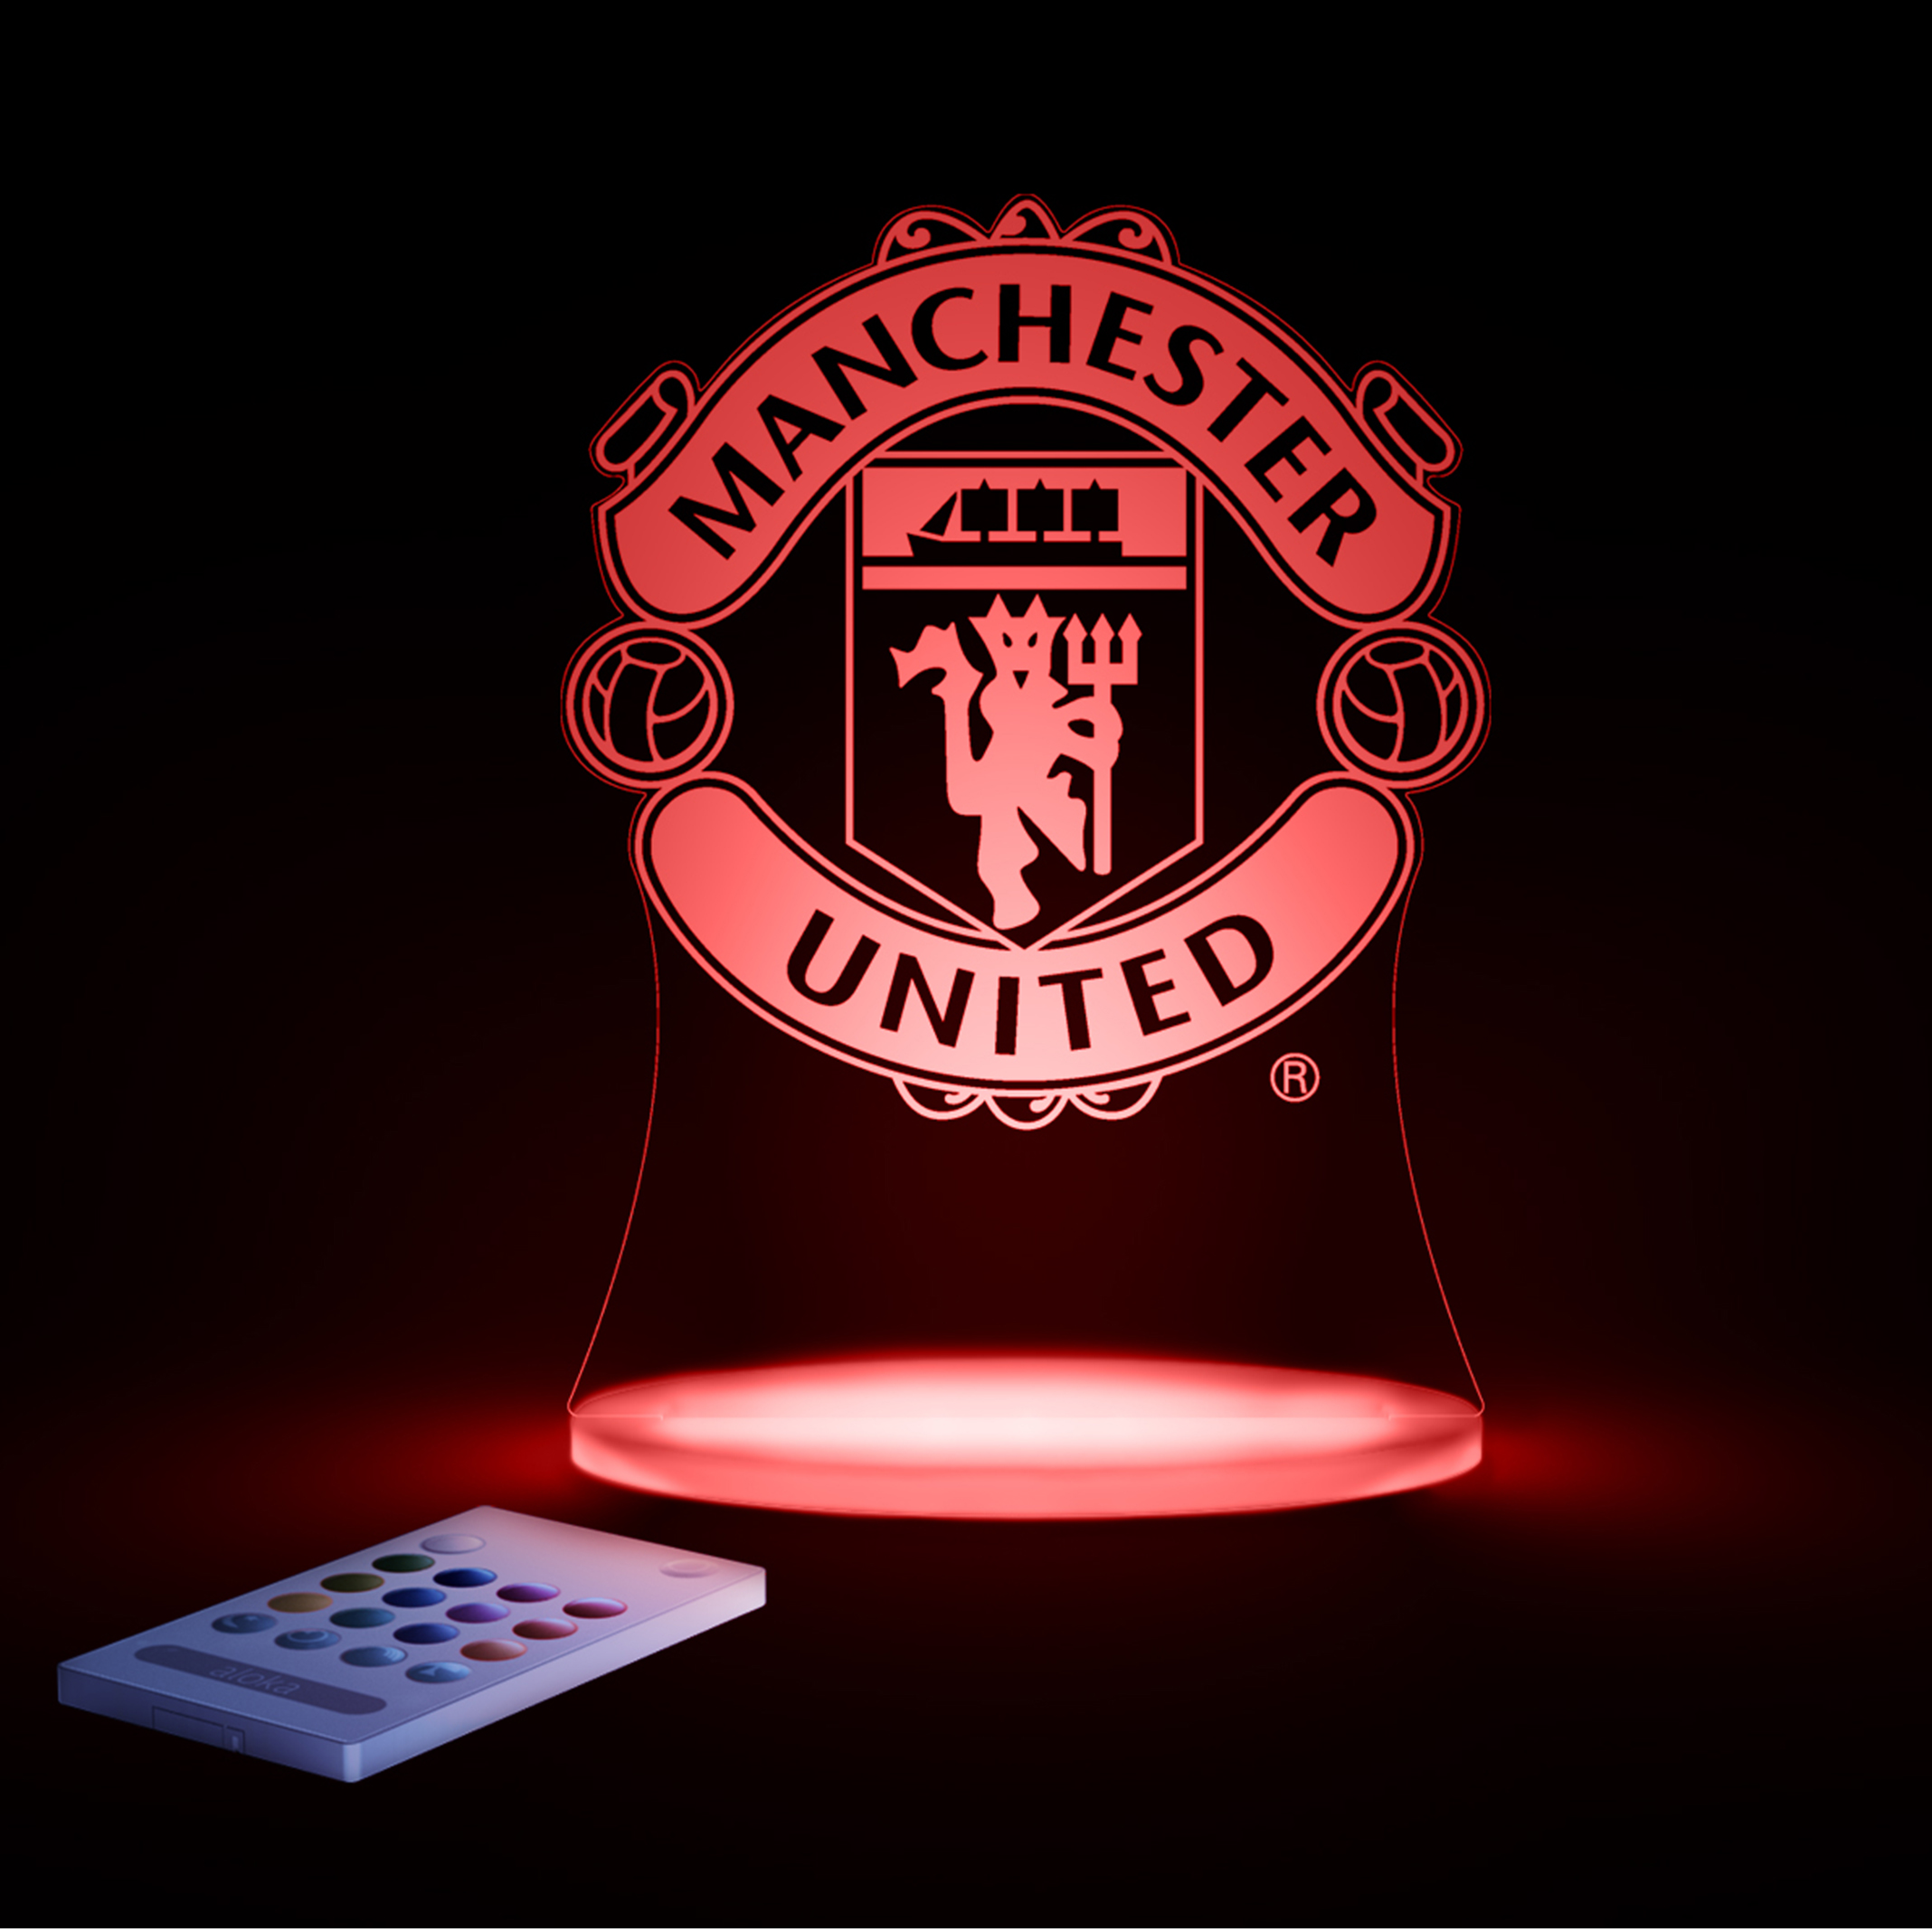 Manchester United Premier USB Crest Light with Remote Control